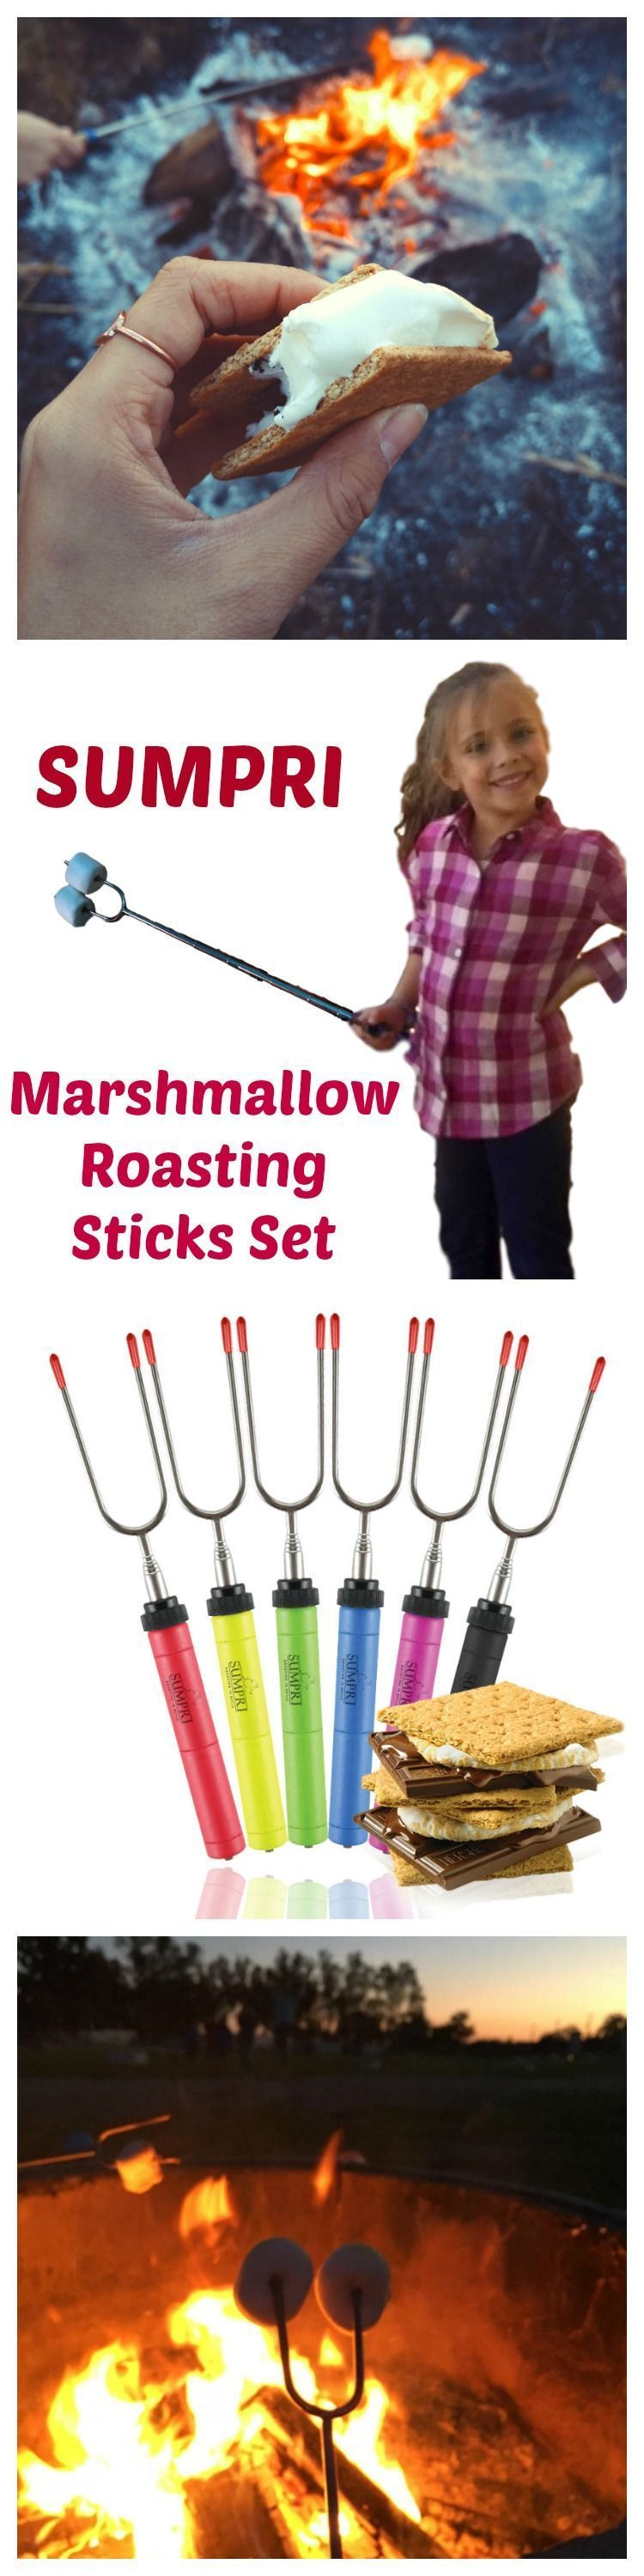 SUMPRI Barbeqa Marshmallow Roasting Sticks Telescoping Marshmallow Jungle Stix Extra Long 34 Set of 6 Campfire Forks Cooking Skewers for Smores, Hotdogs, Camping Cookware, Backpacking Gear, Bbq Grill, Fireplace Tools, Fire Pit Accessories This set of 6 forks is made by #sumpri #marshmallow #sticks #marshmallowroastingsticks #smoressticks #campfiresticks #smores #marshmallowsticks SUMPRI Barbeqa Marshmallow Roasting Sticks Telescoping Marshmallow Jungle Stix Extra Long 34 Set of 6 Campfire Forks #smoressticks